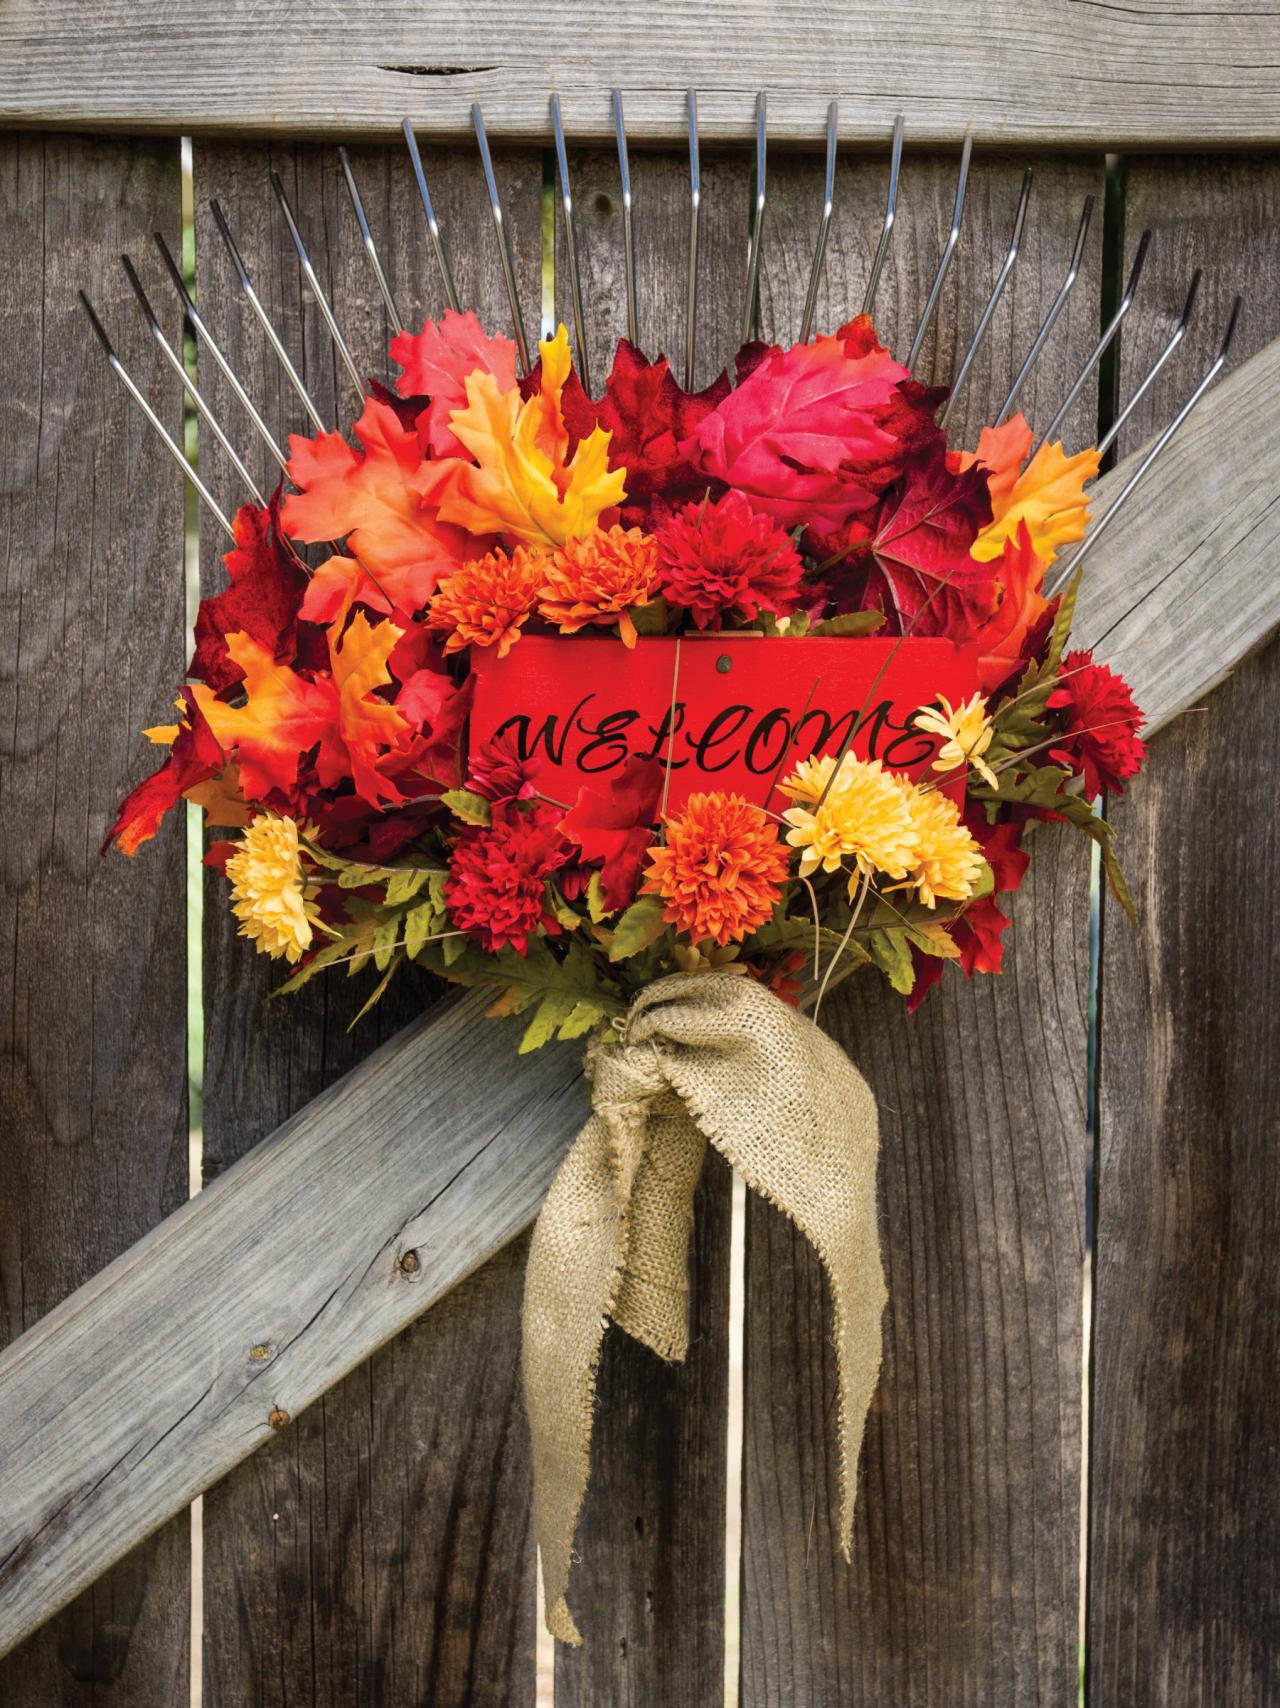 Fun Fall Garden Gate Decor